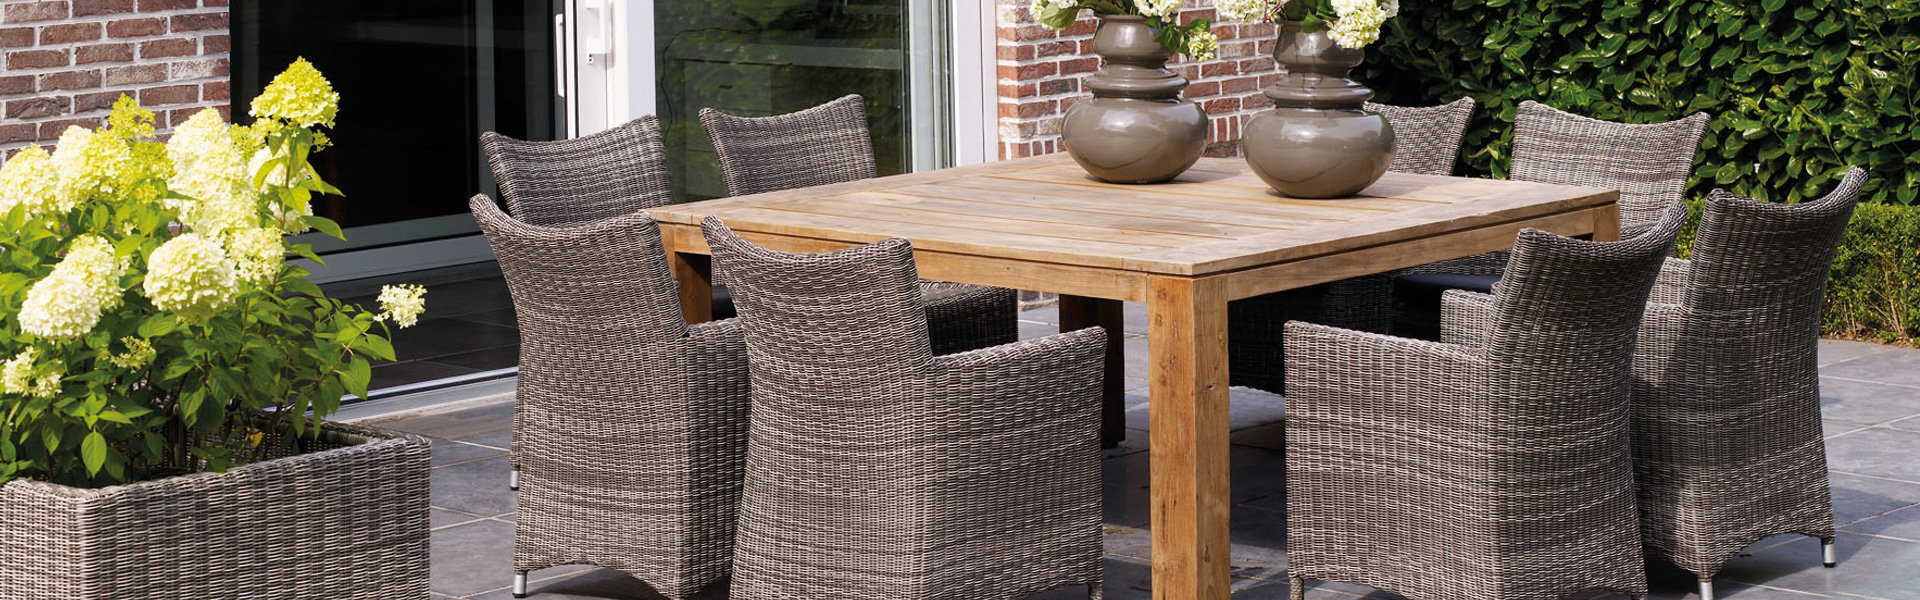 Largest collection of garden furniture